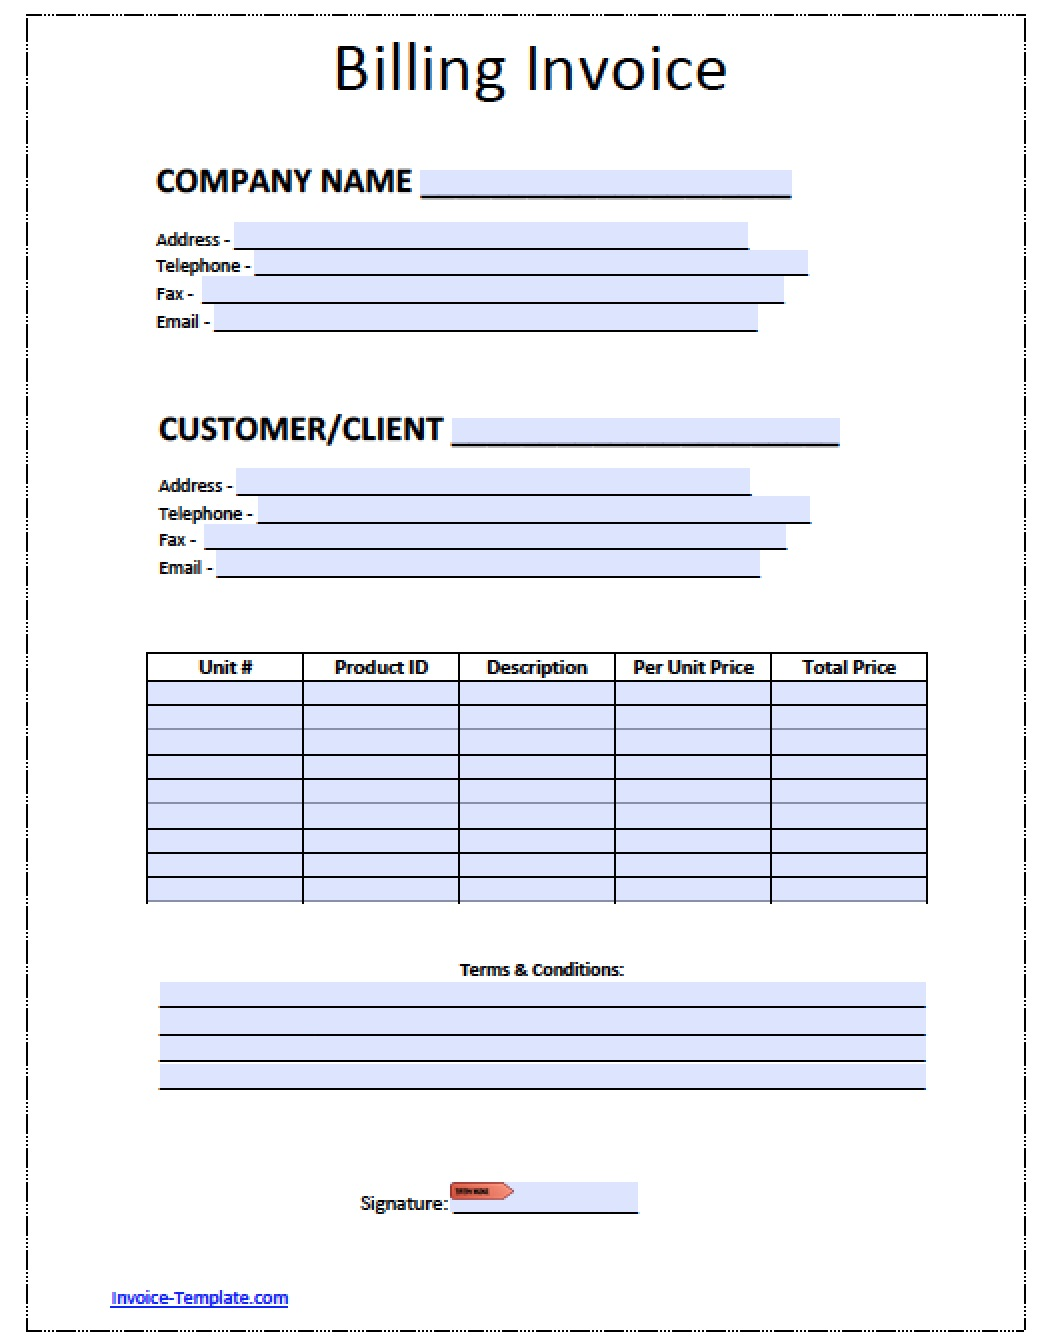 Free Billing Invoice Template | Excel | PDF | Word (.doc)